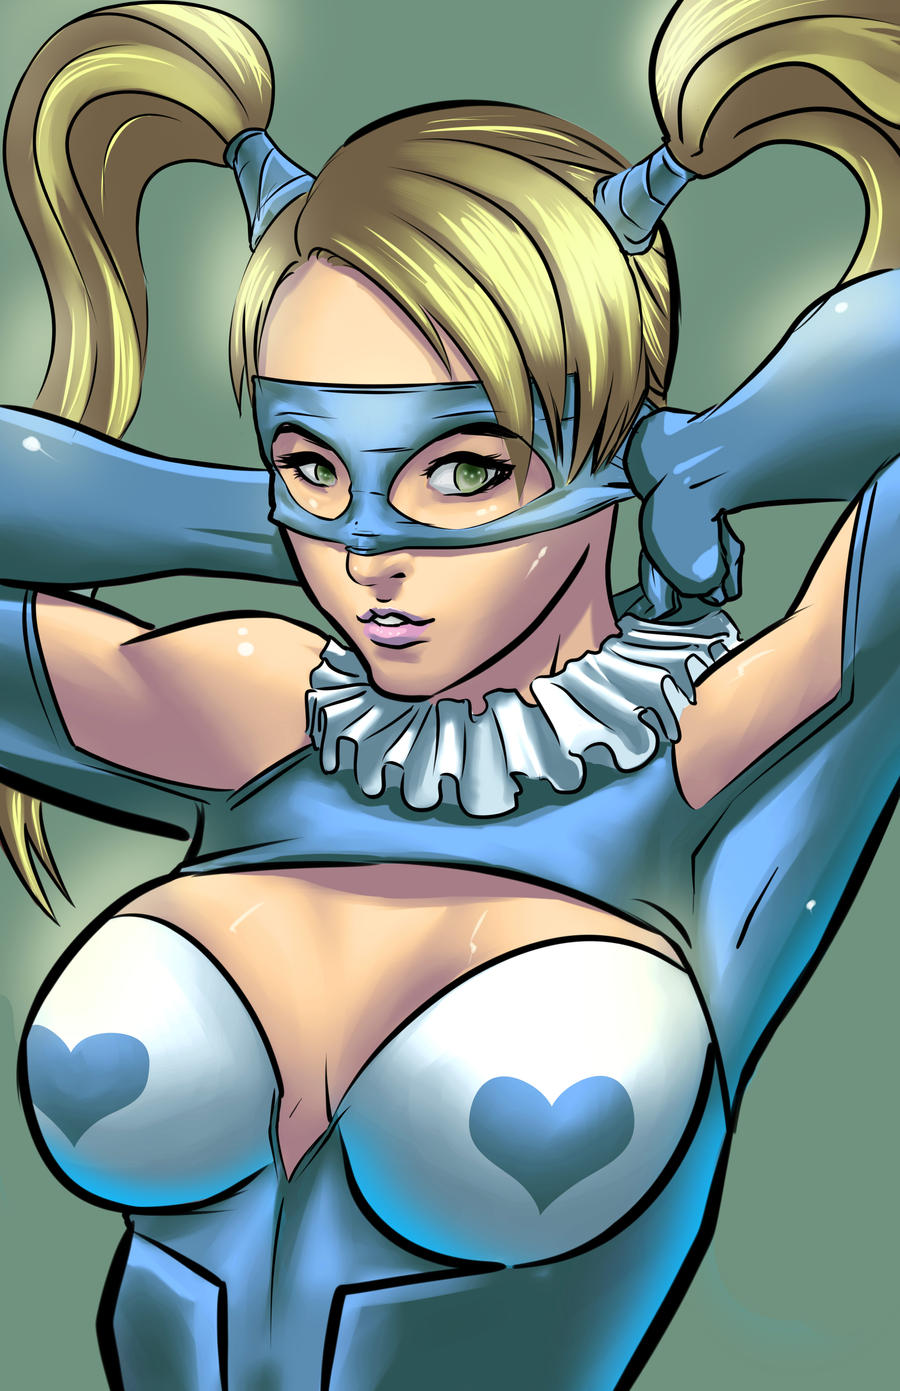 R. Mika Street Fighter Art Jam by JohanneLight